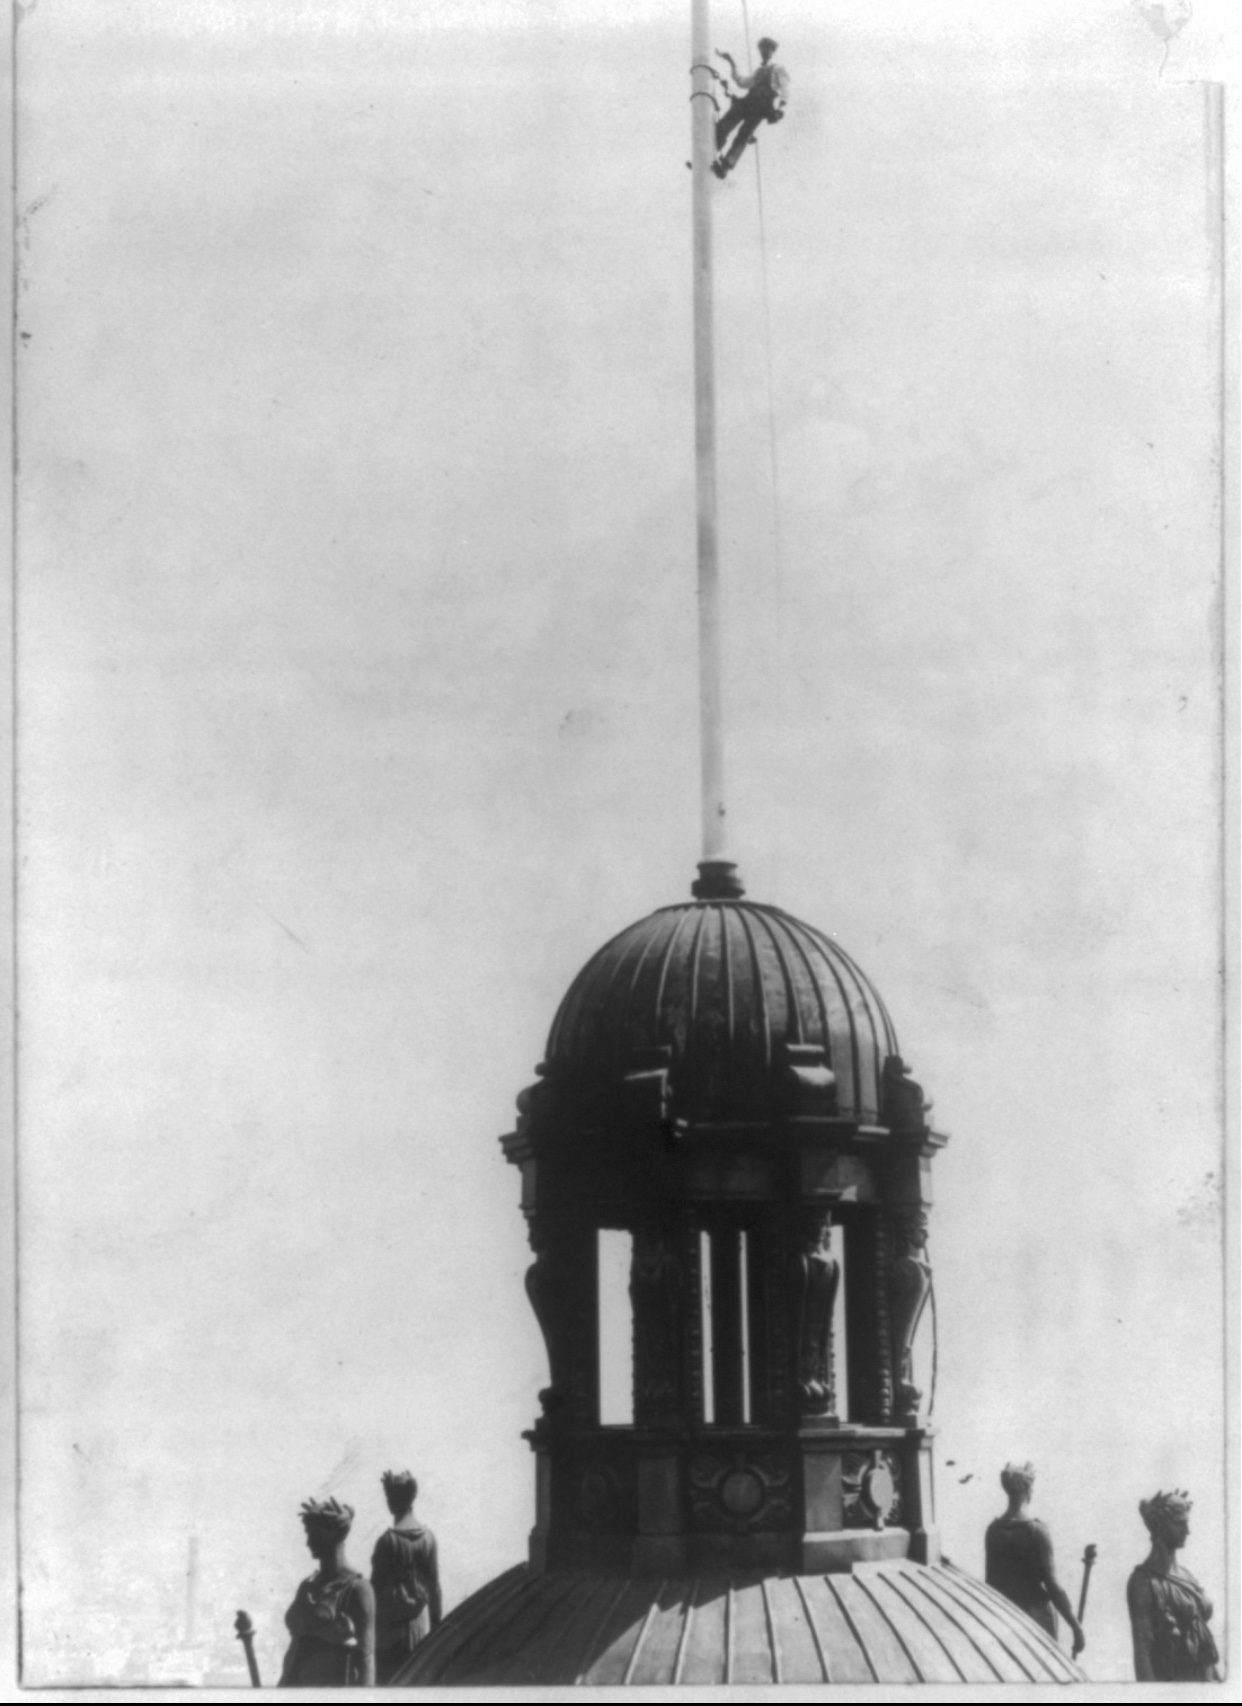 One of two Park Row Building cupolas